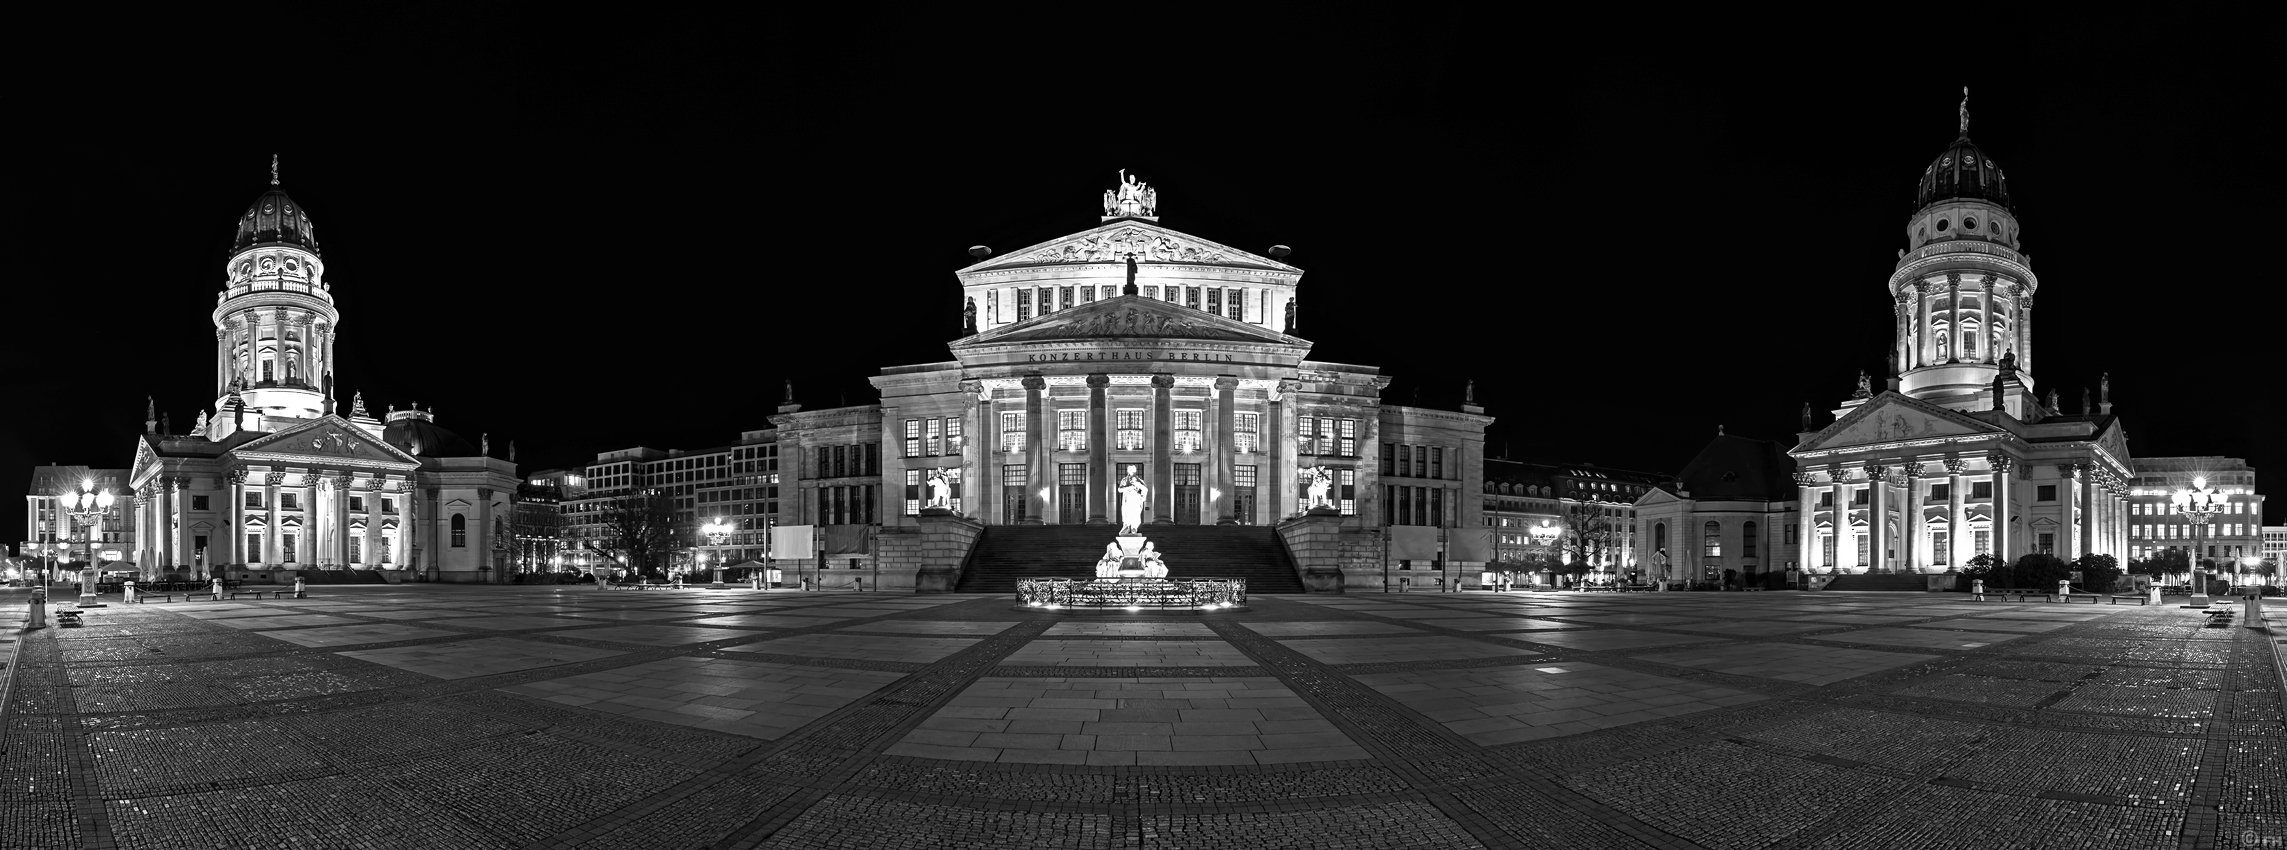 berlin gendarmenmarkt panorama nachts schwarzweiss skyline konzerthaus. Black Bedroom Furniture Sets. Home Design Ideas